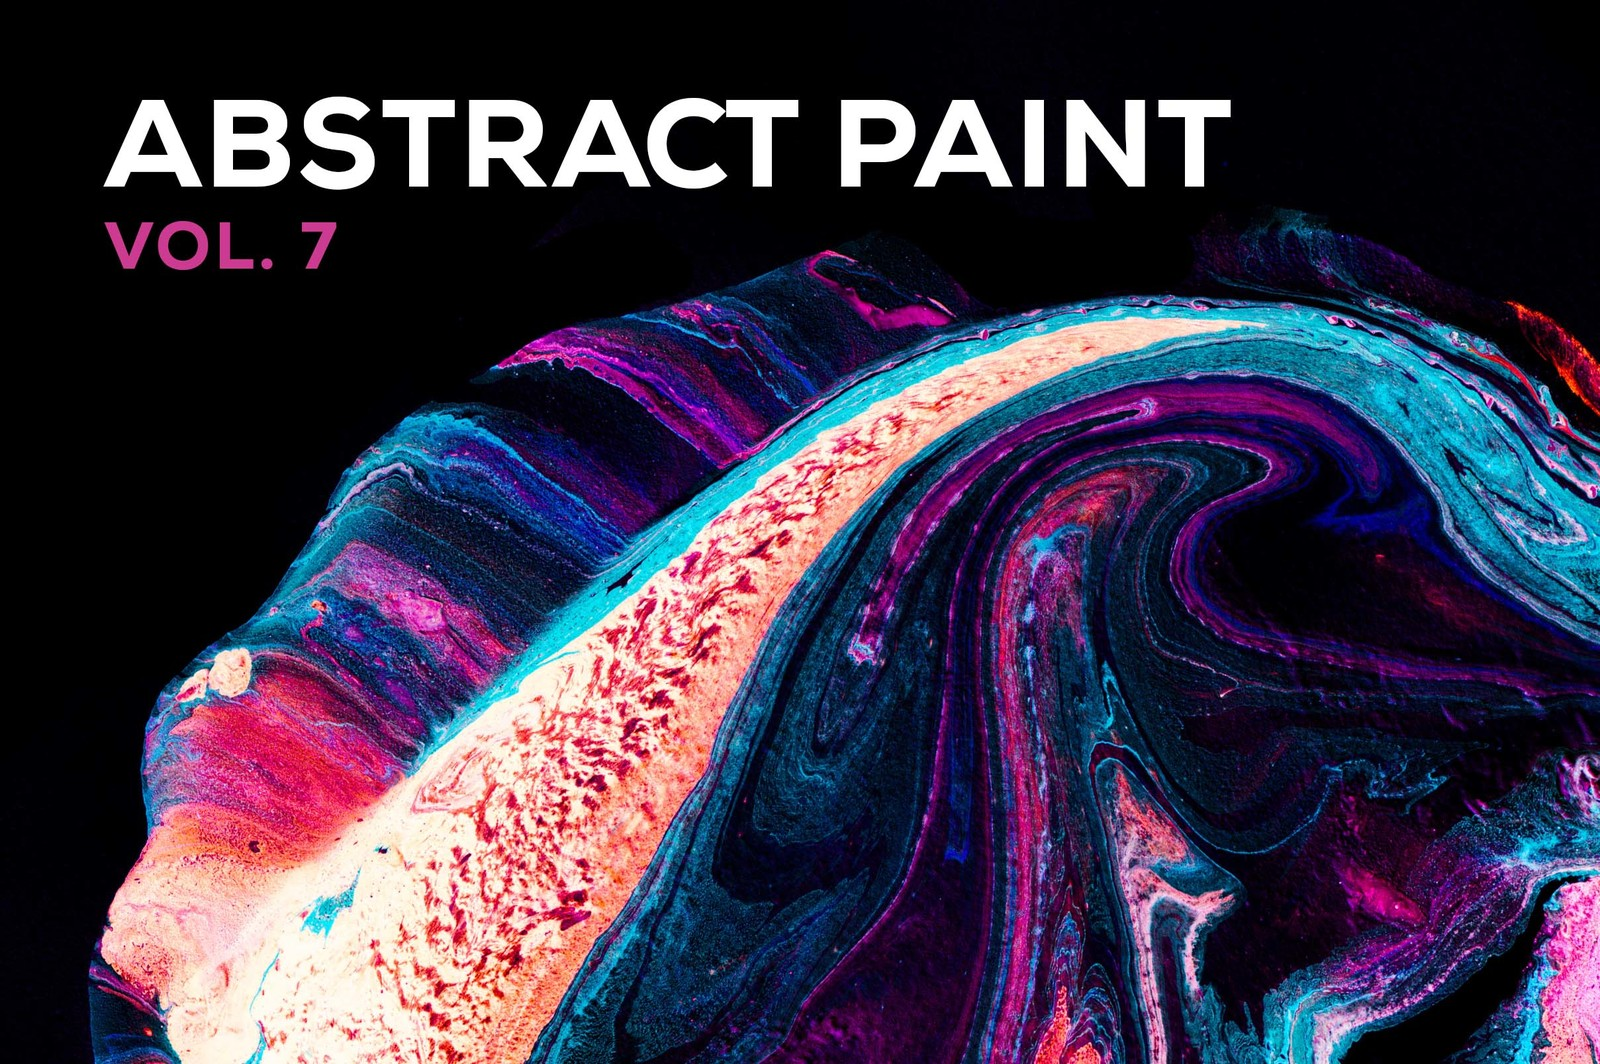 Abstract Paint, Vol. 7